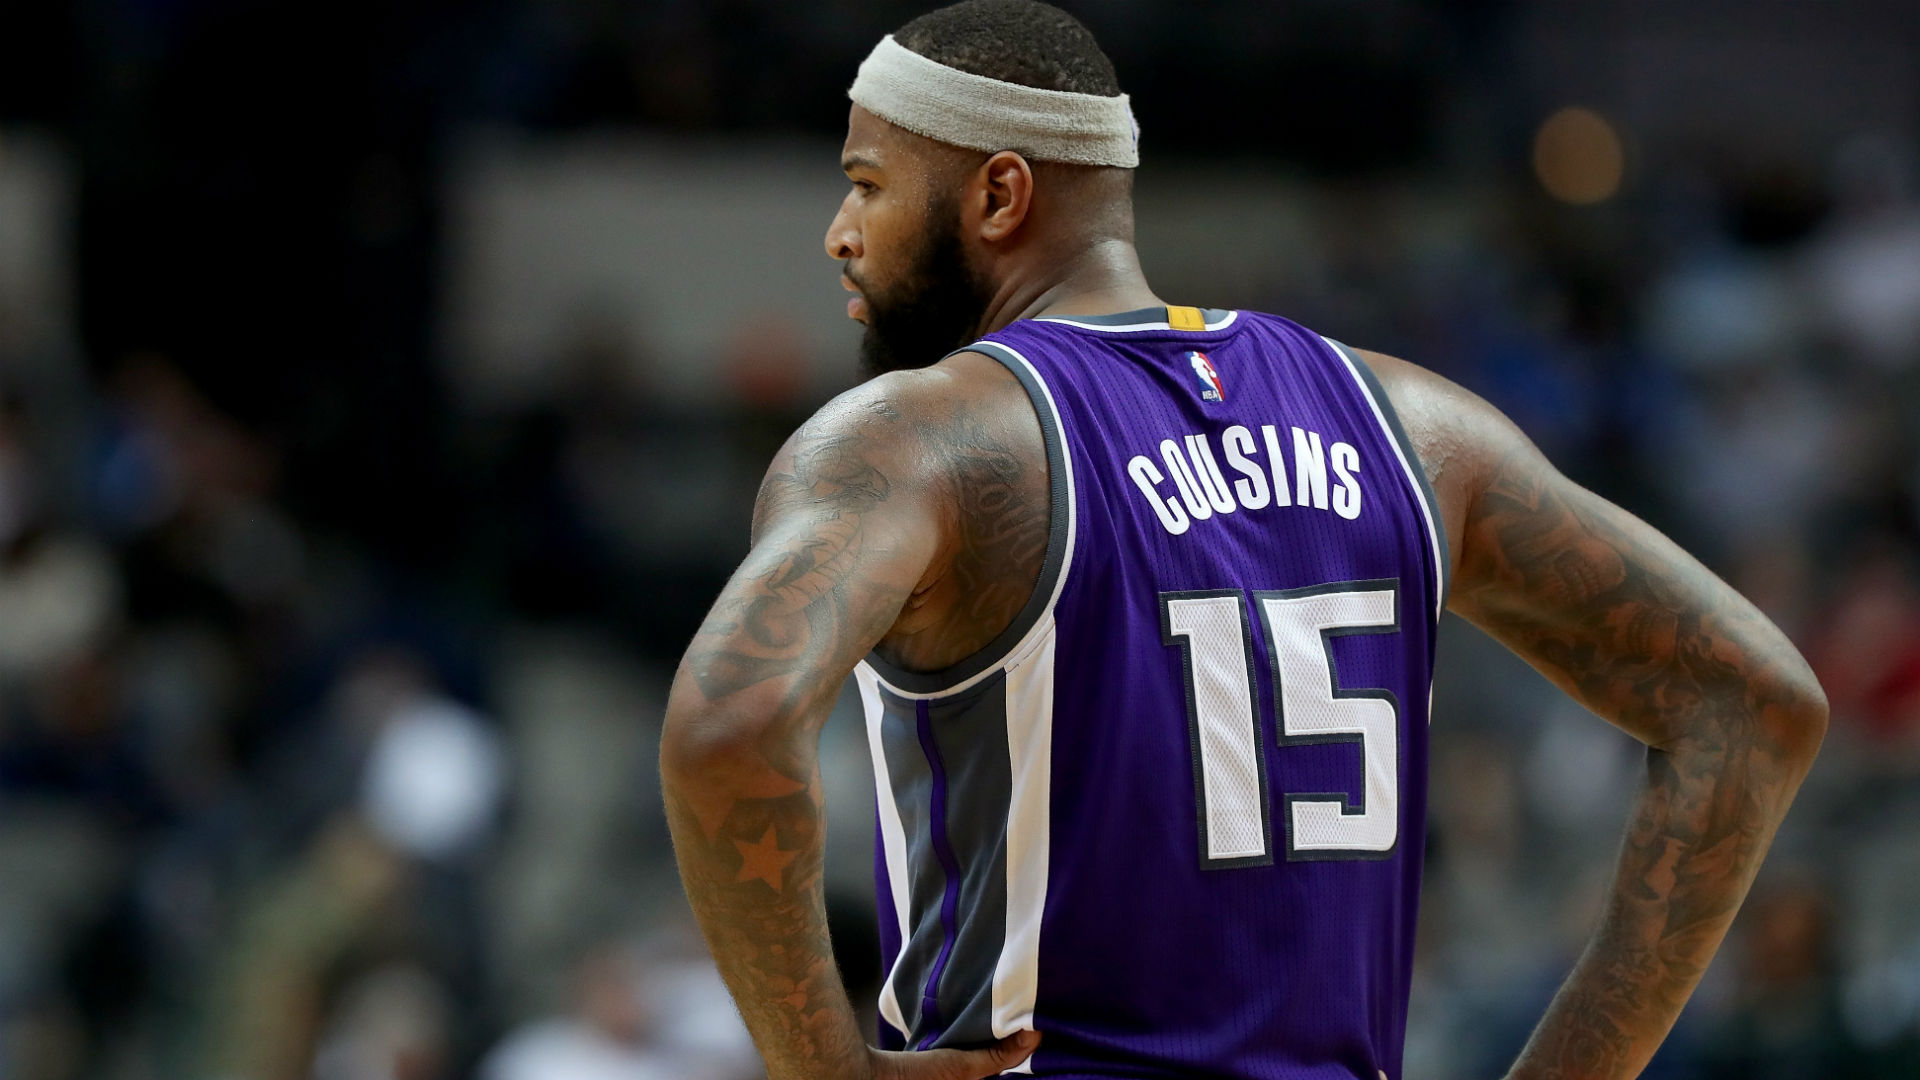 DeMarcus Cousins facing 1-game ban after getting 16th tech of season